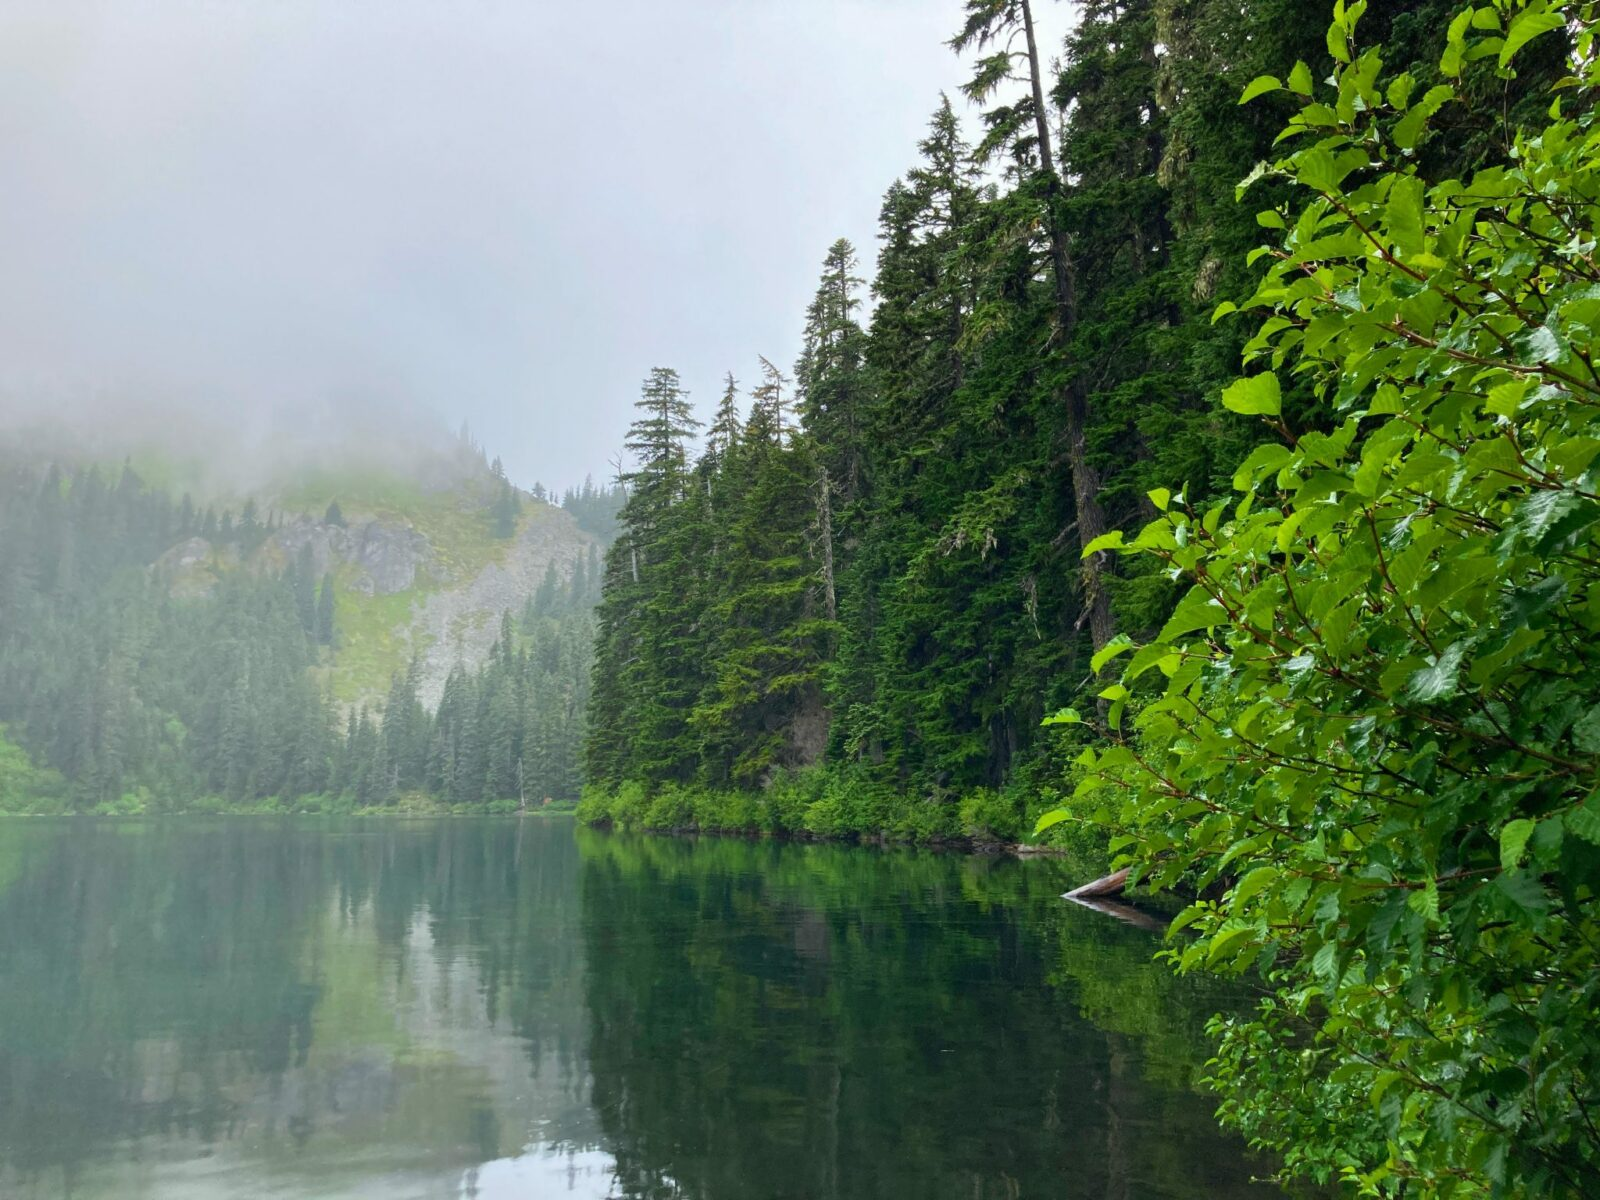 Mirror Lake on a cloudy day is ringed by evergreen trees and mountains which area hidden behind the clouds